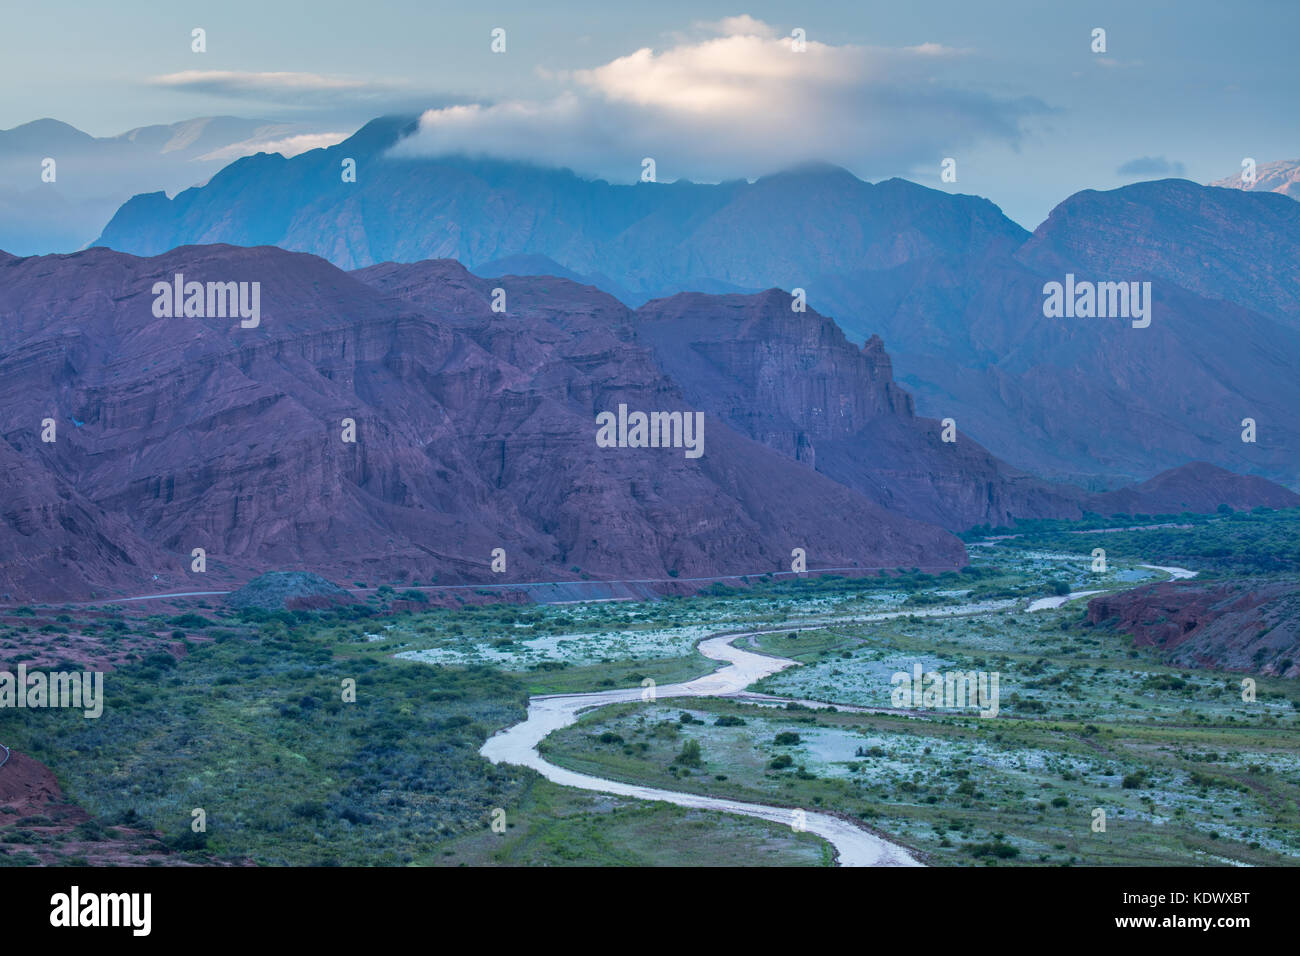 The Quebrada de la Conches from the Mirador Tres Cruces in Valles Calchaquies, Salta Province, Argentina - Stock Image